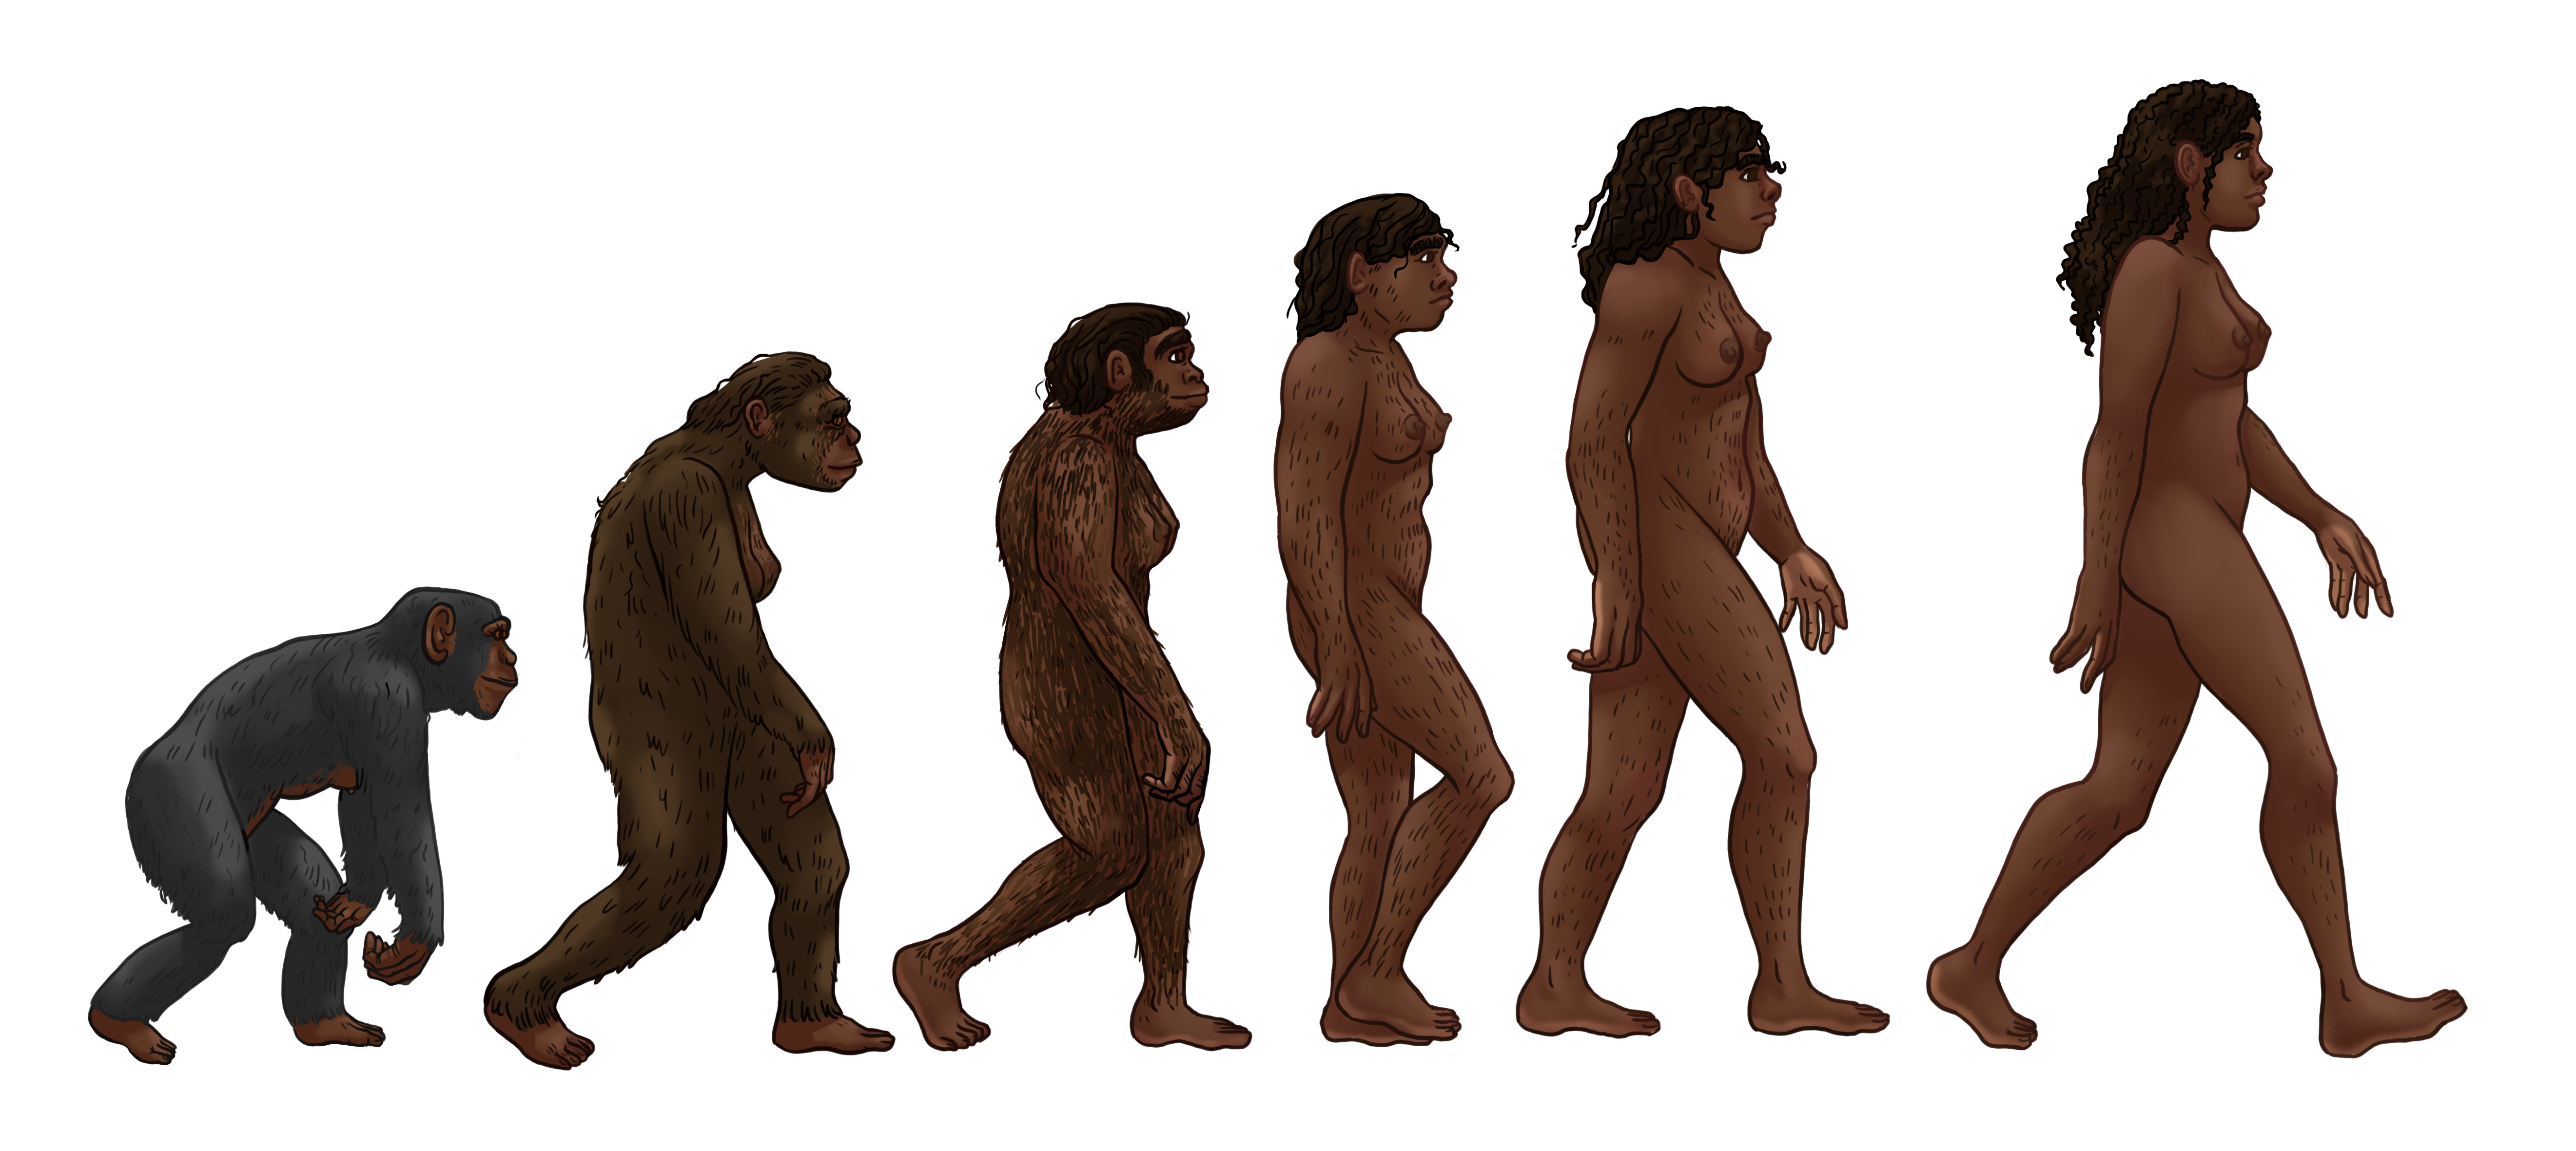 female_human_evolution_2.png